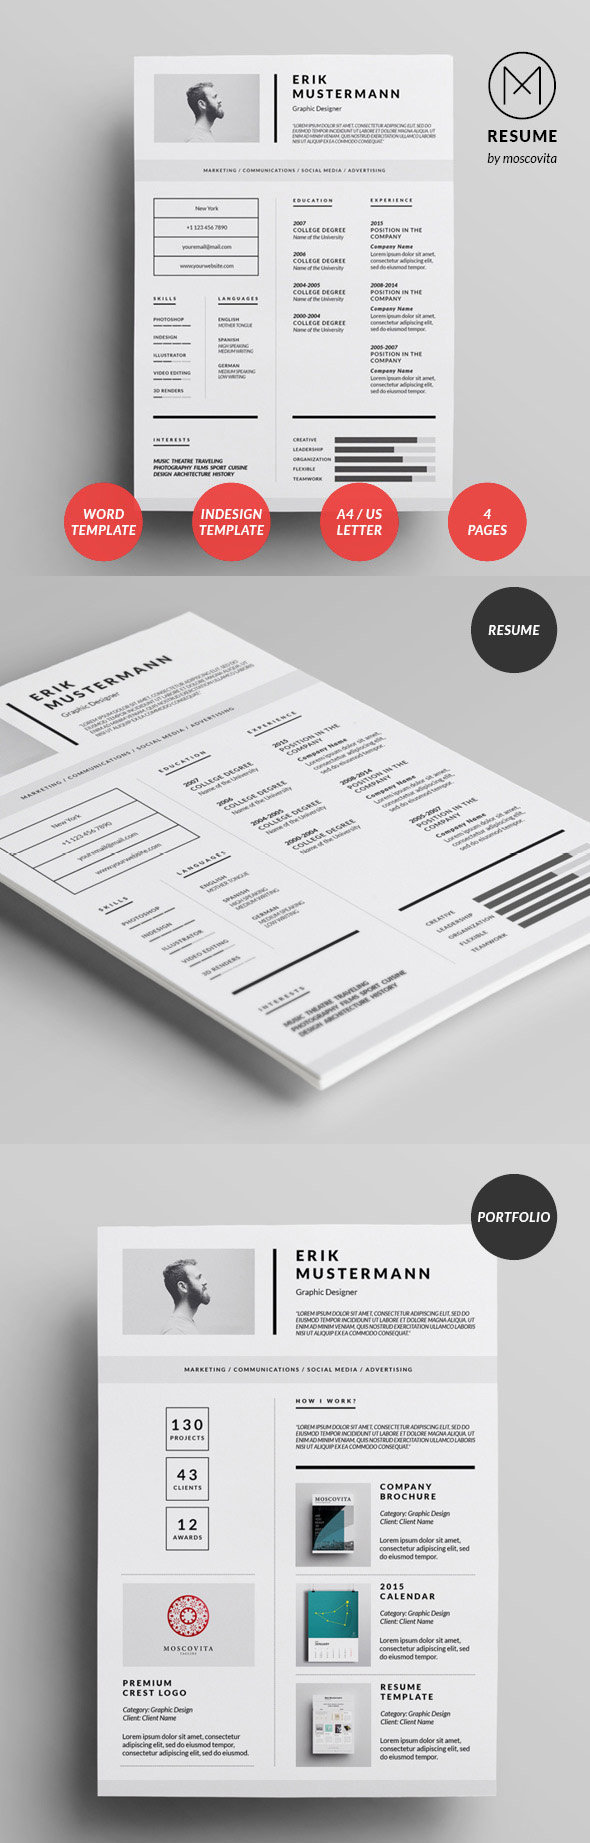 Creative resume templates indesign